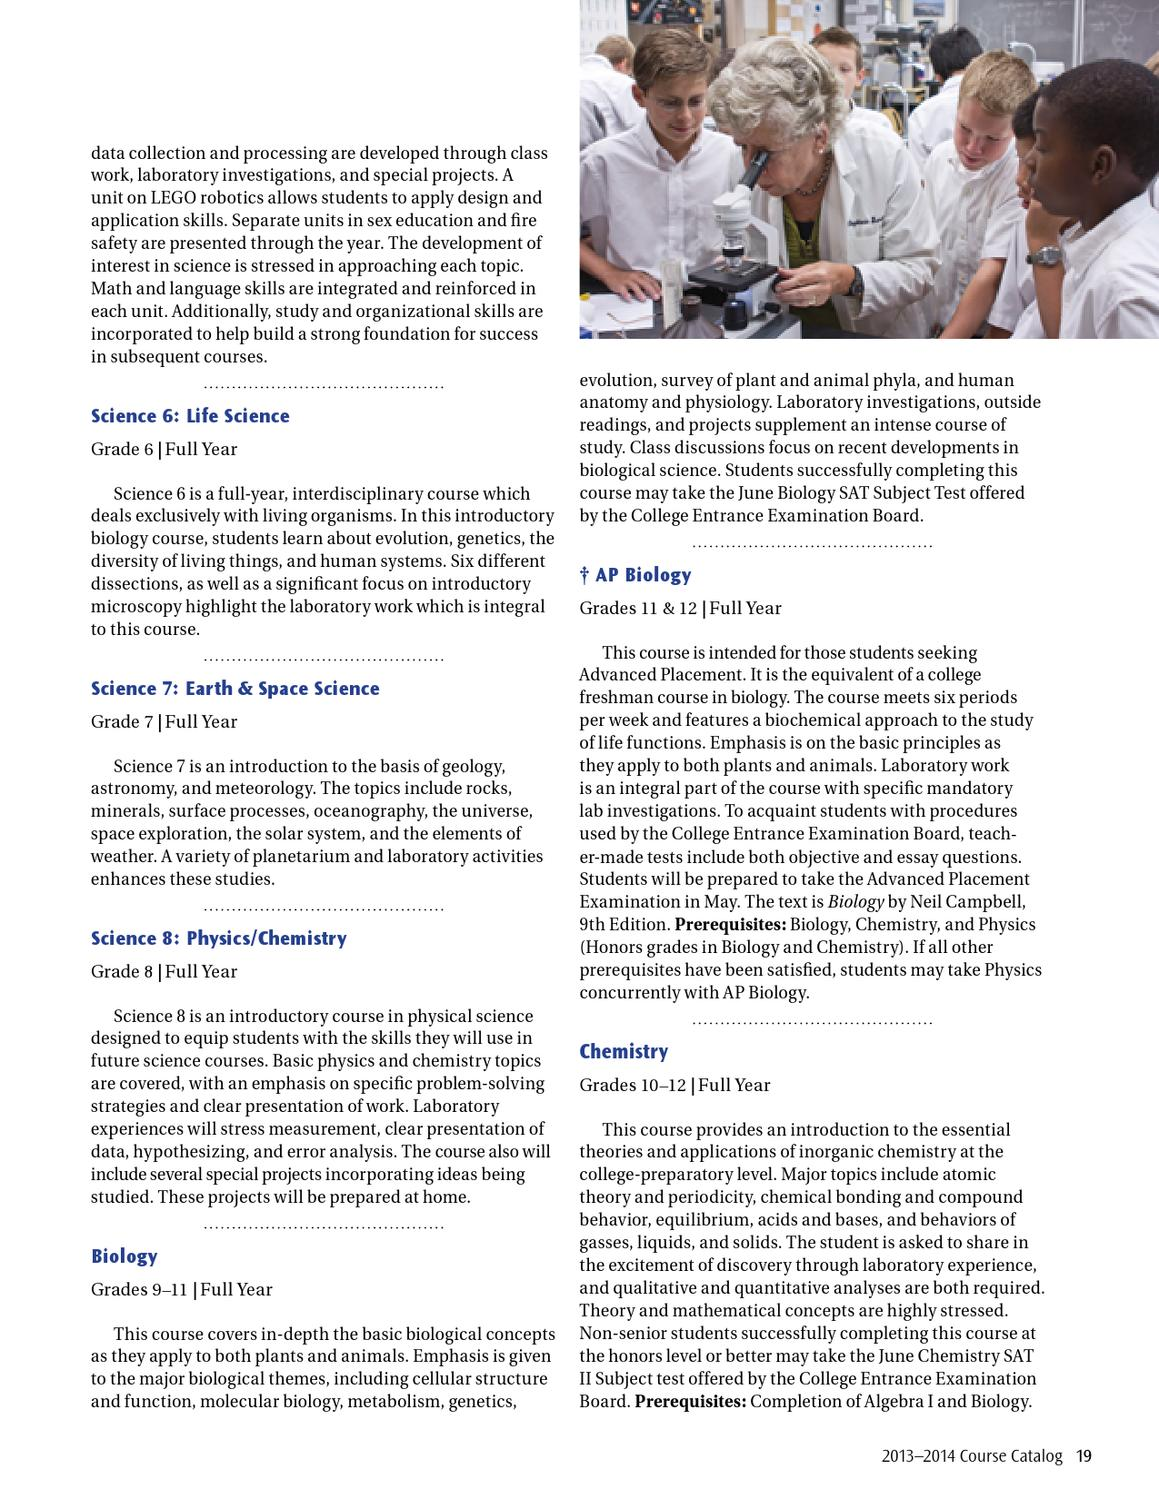 Course Catalog 2013-2014 by St  Mark's School of Texas - issuu